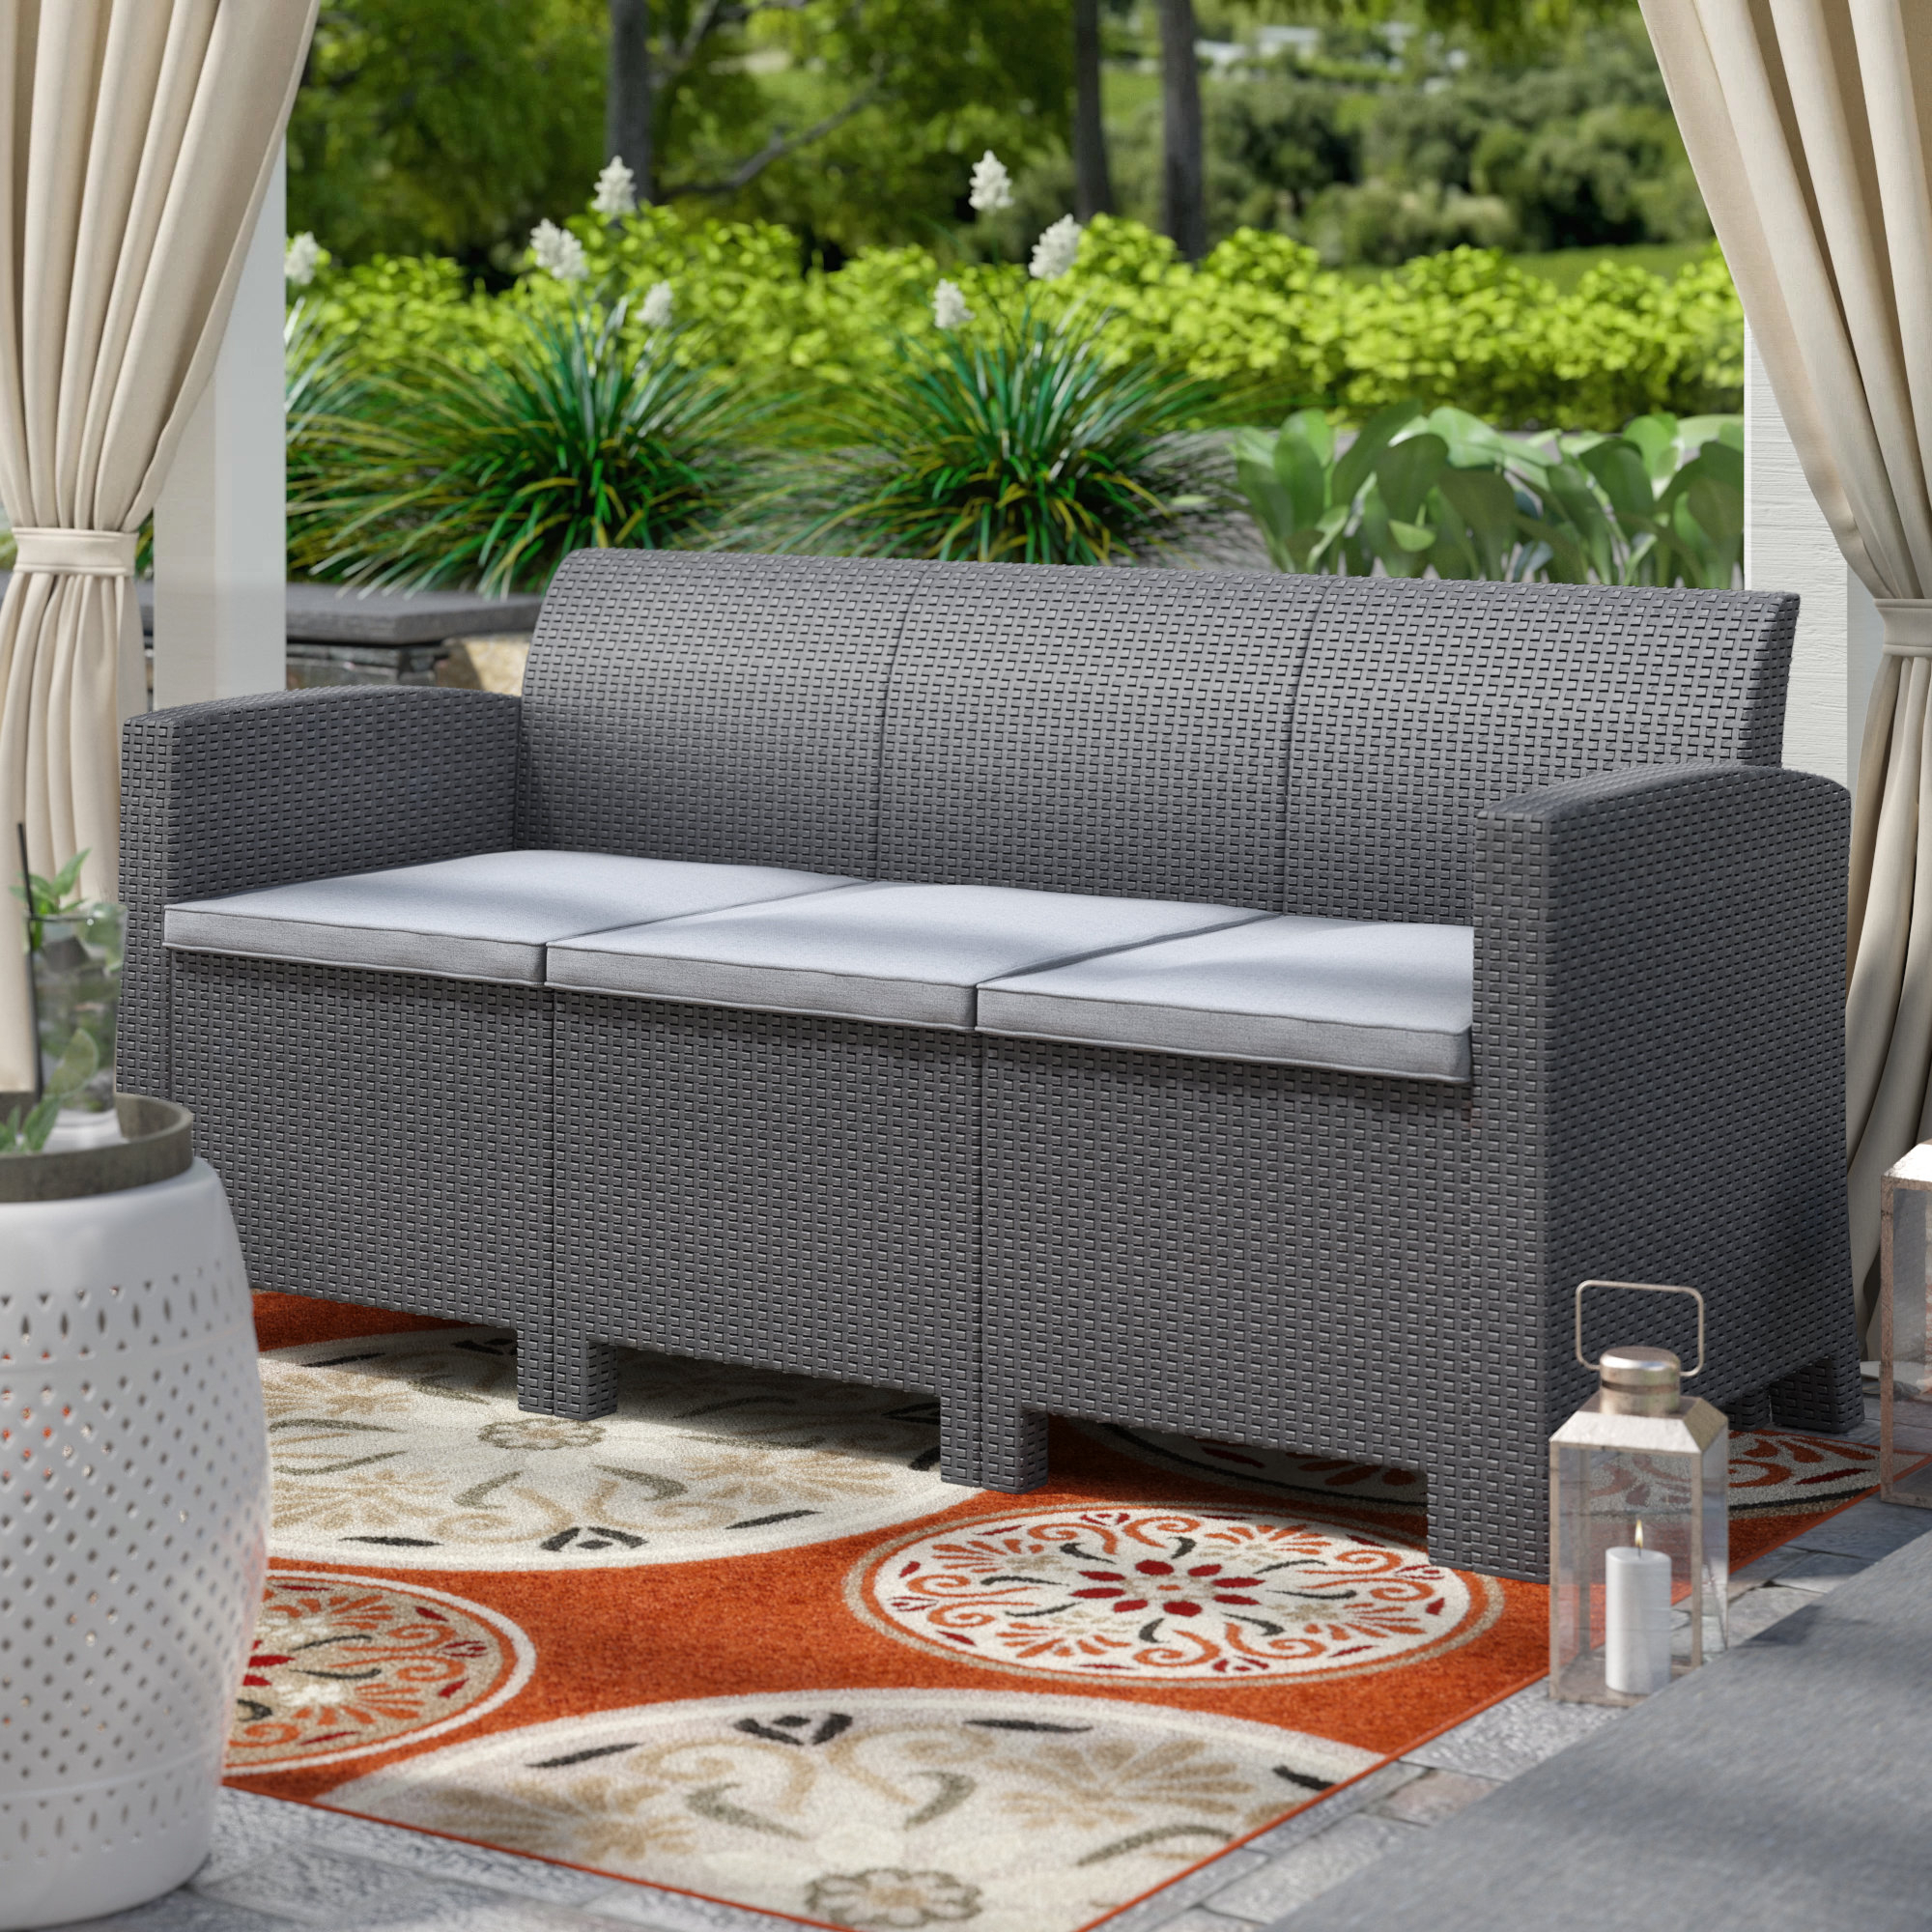 Stockwell Patio Sofas With Cushions Intended For Most Recently Released Yoselin Patio Sofa With Cushions (View 8 of 20)